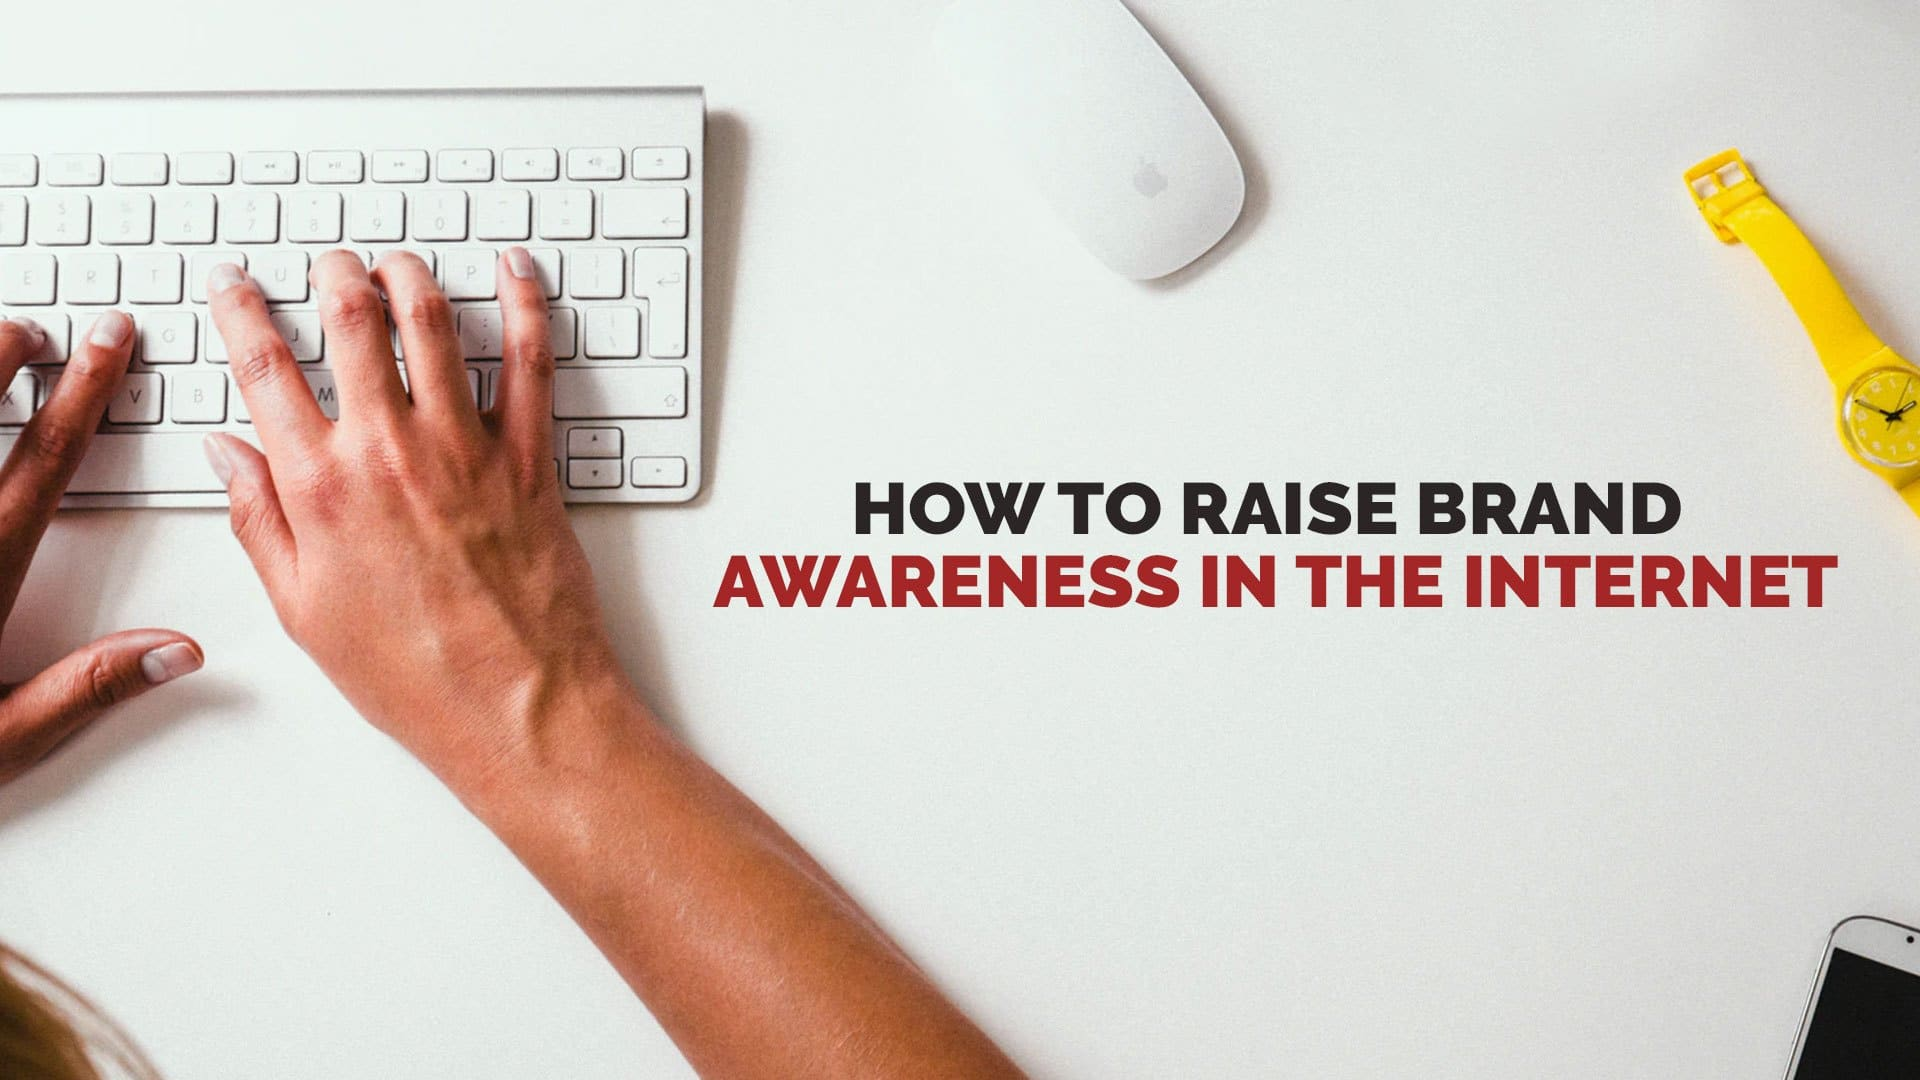 How to Raise Brand Awareness on the Internet